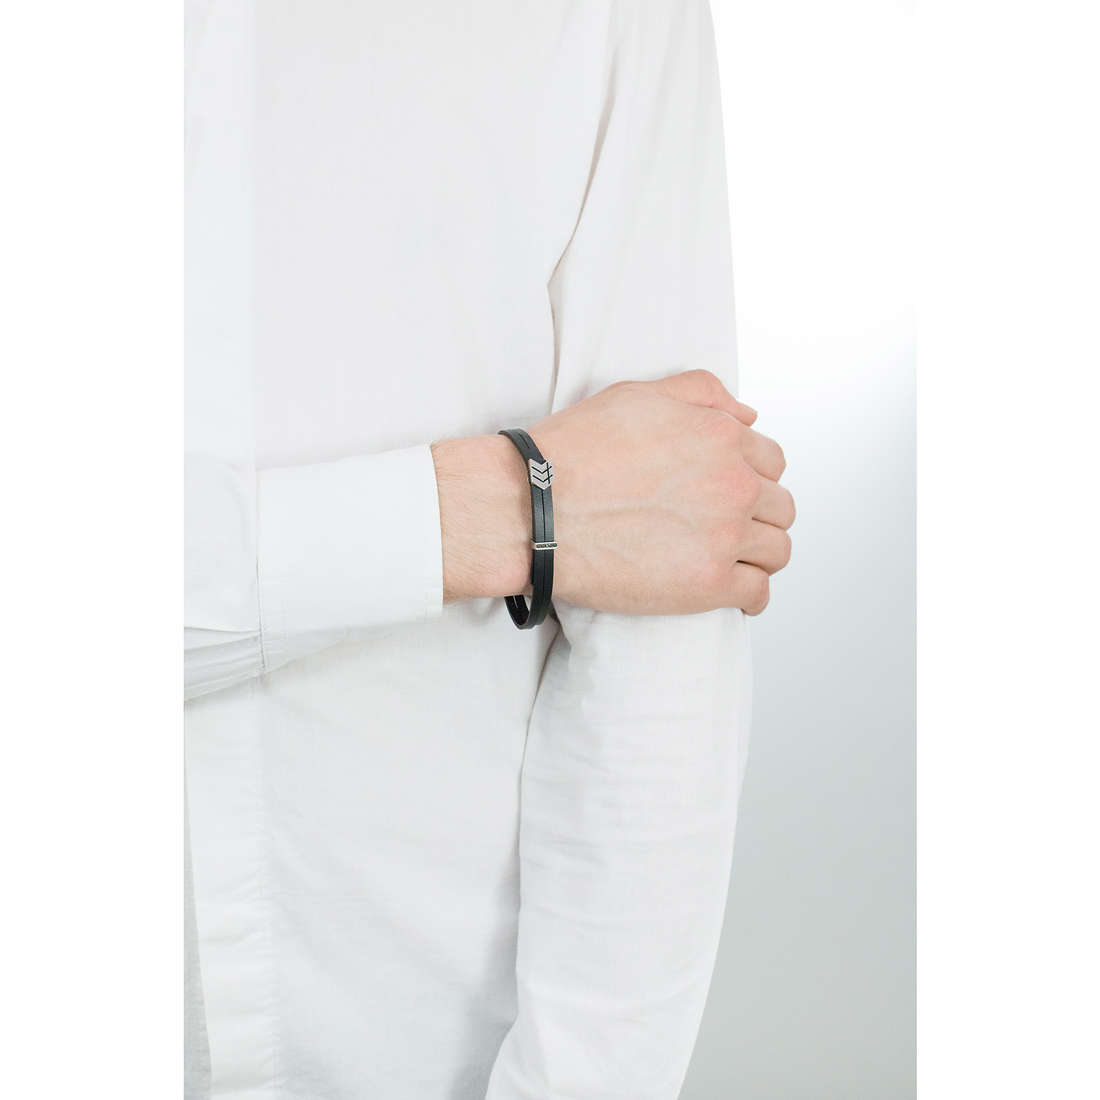 Nomination bracelets Metropolitan man 026704/008 indosso